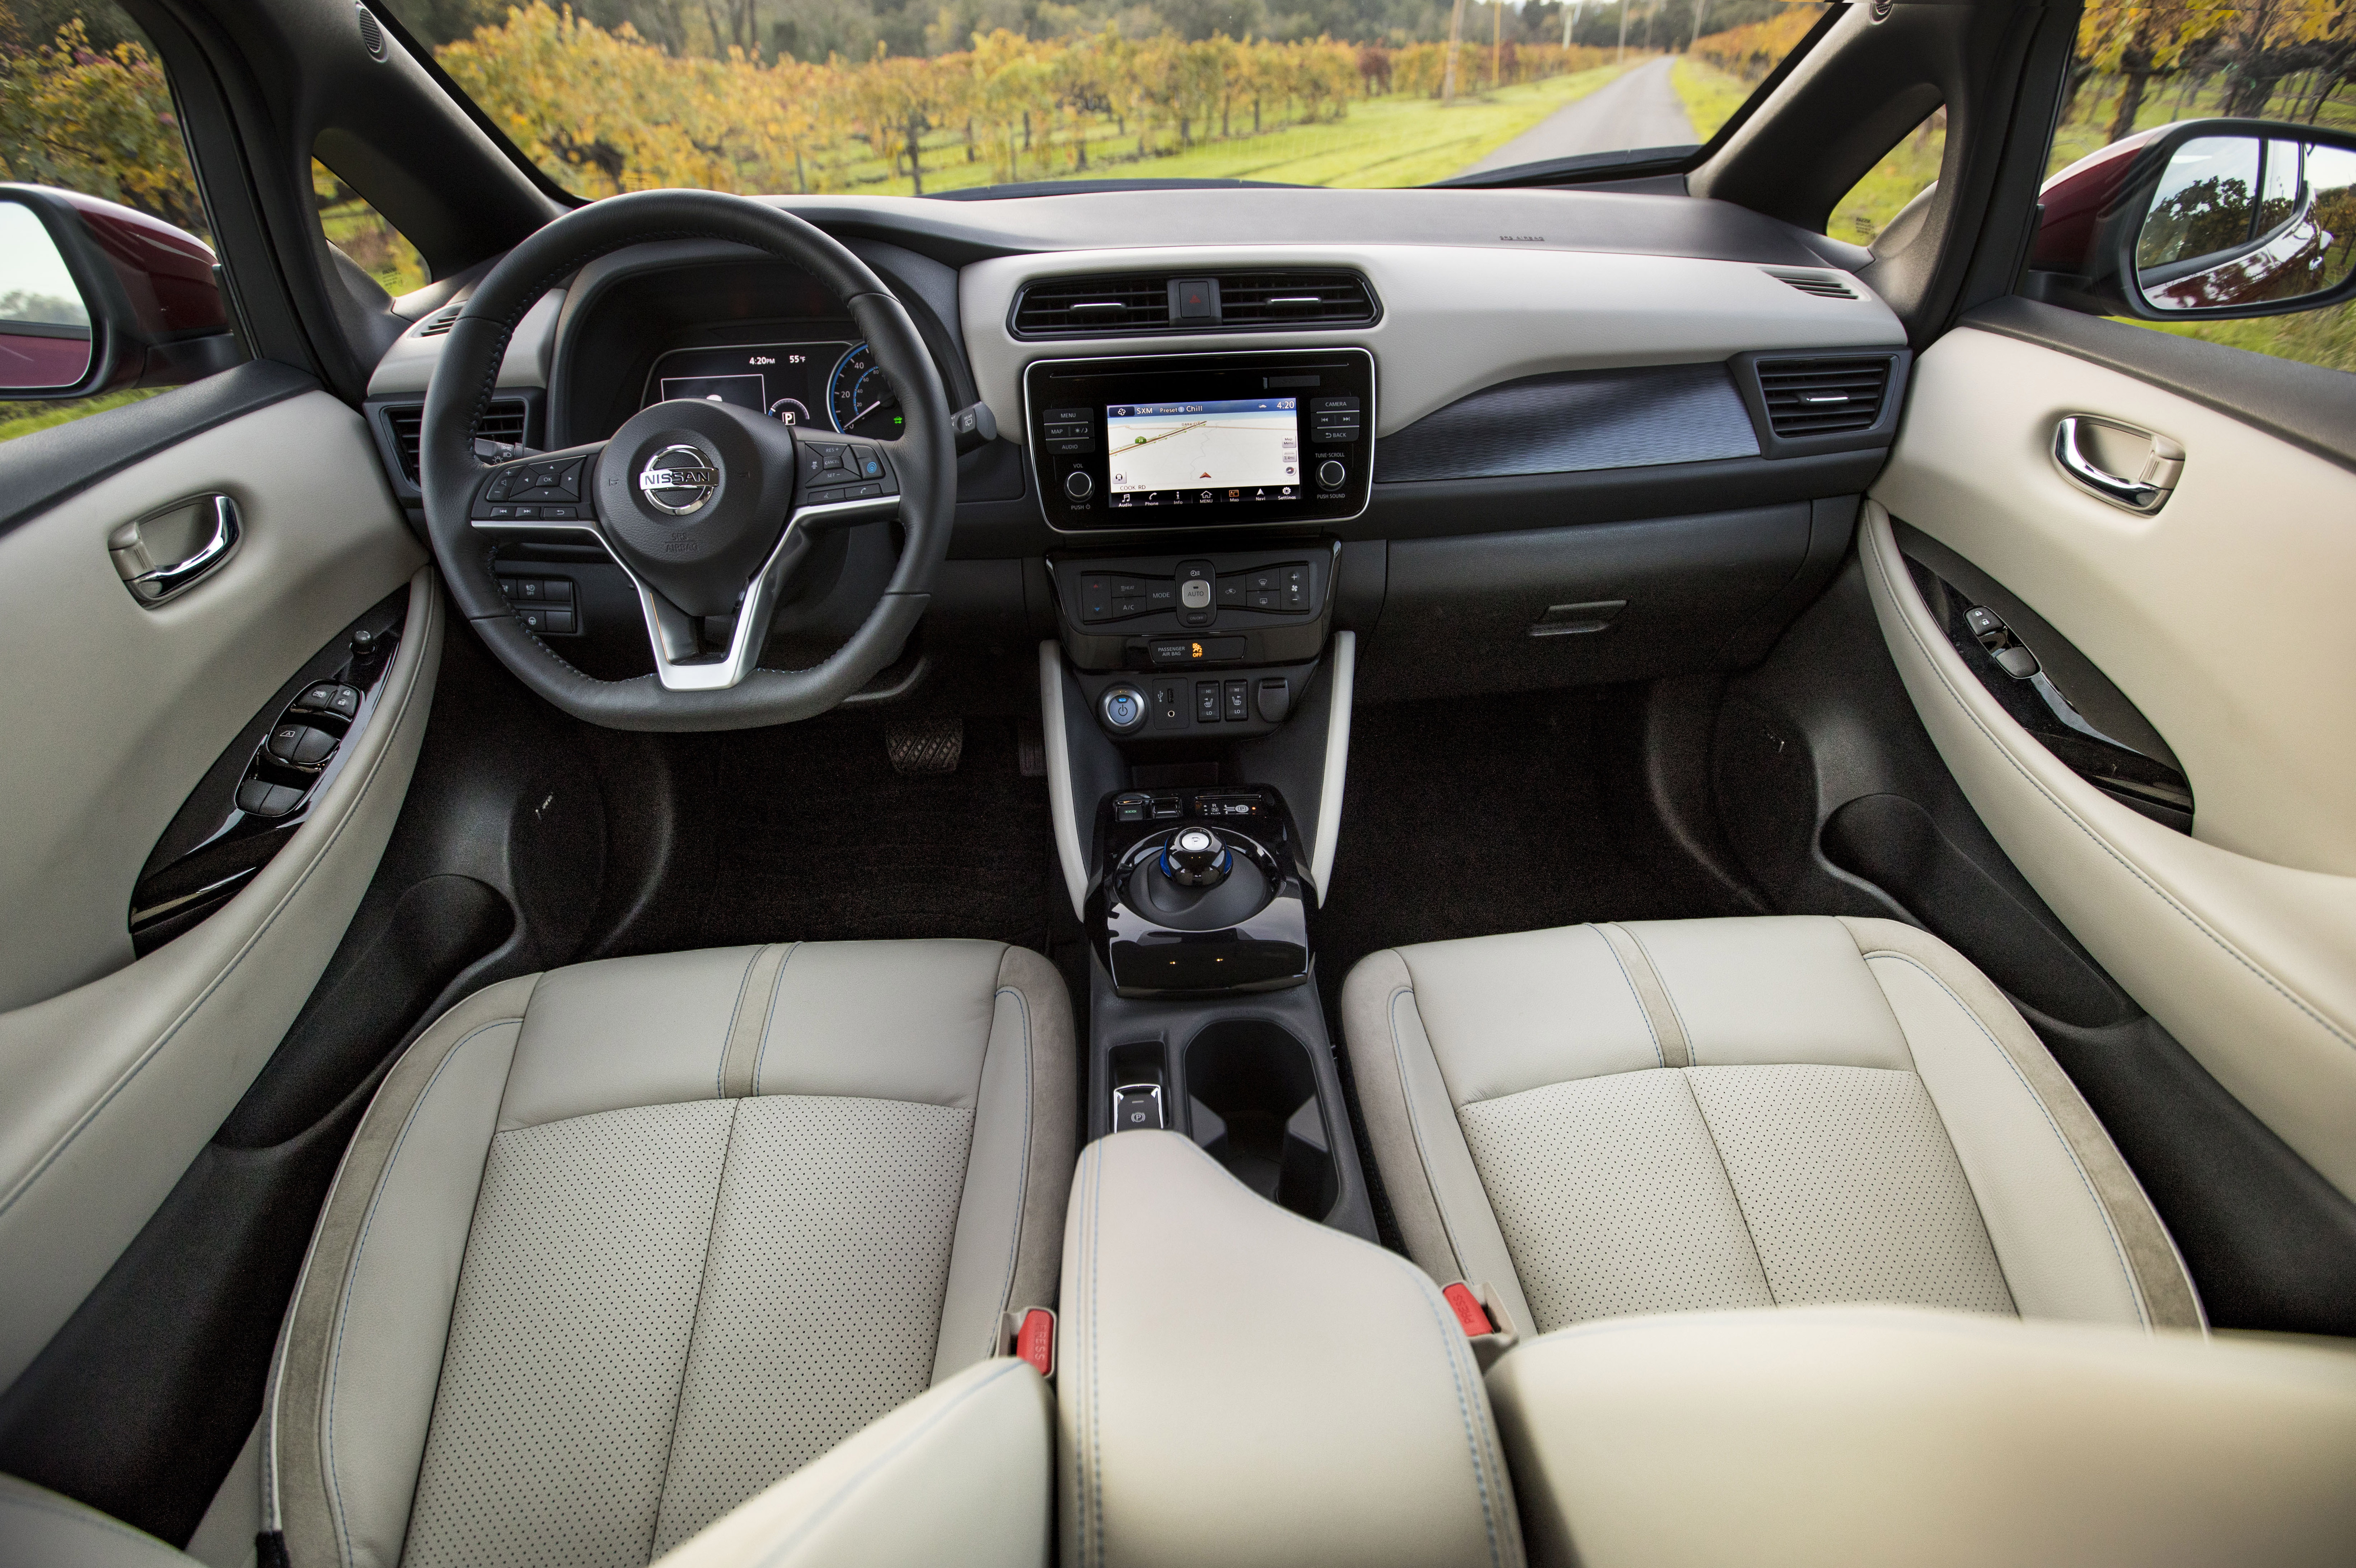 The interior of the Nissan Leaf is spare but attractive; Nissan has always had a stylish touch on the inside.